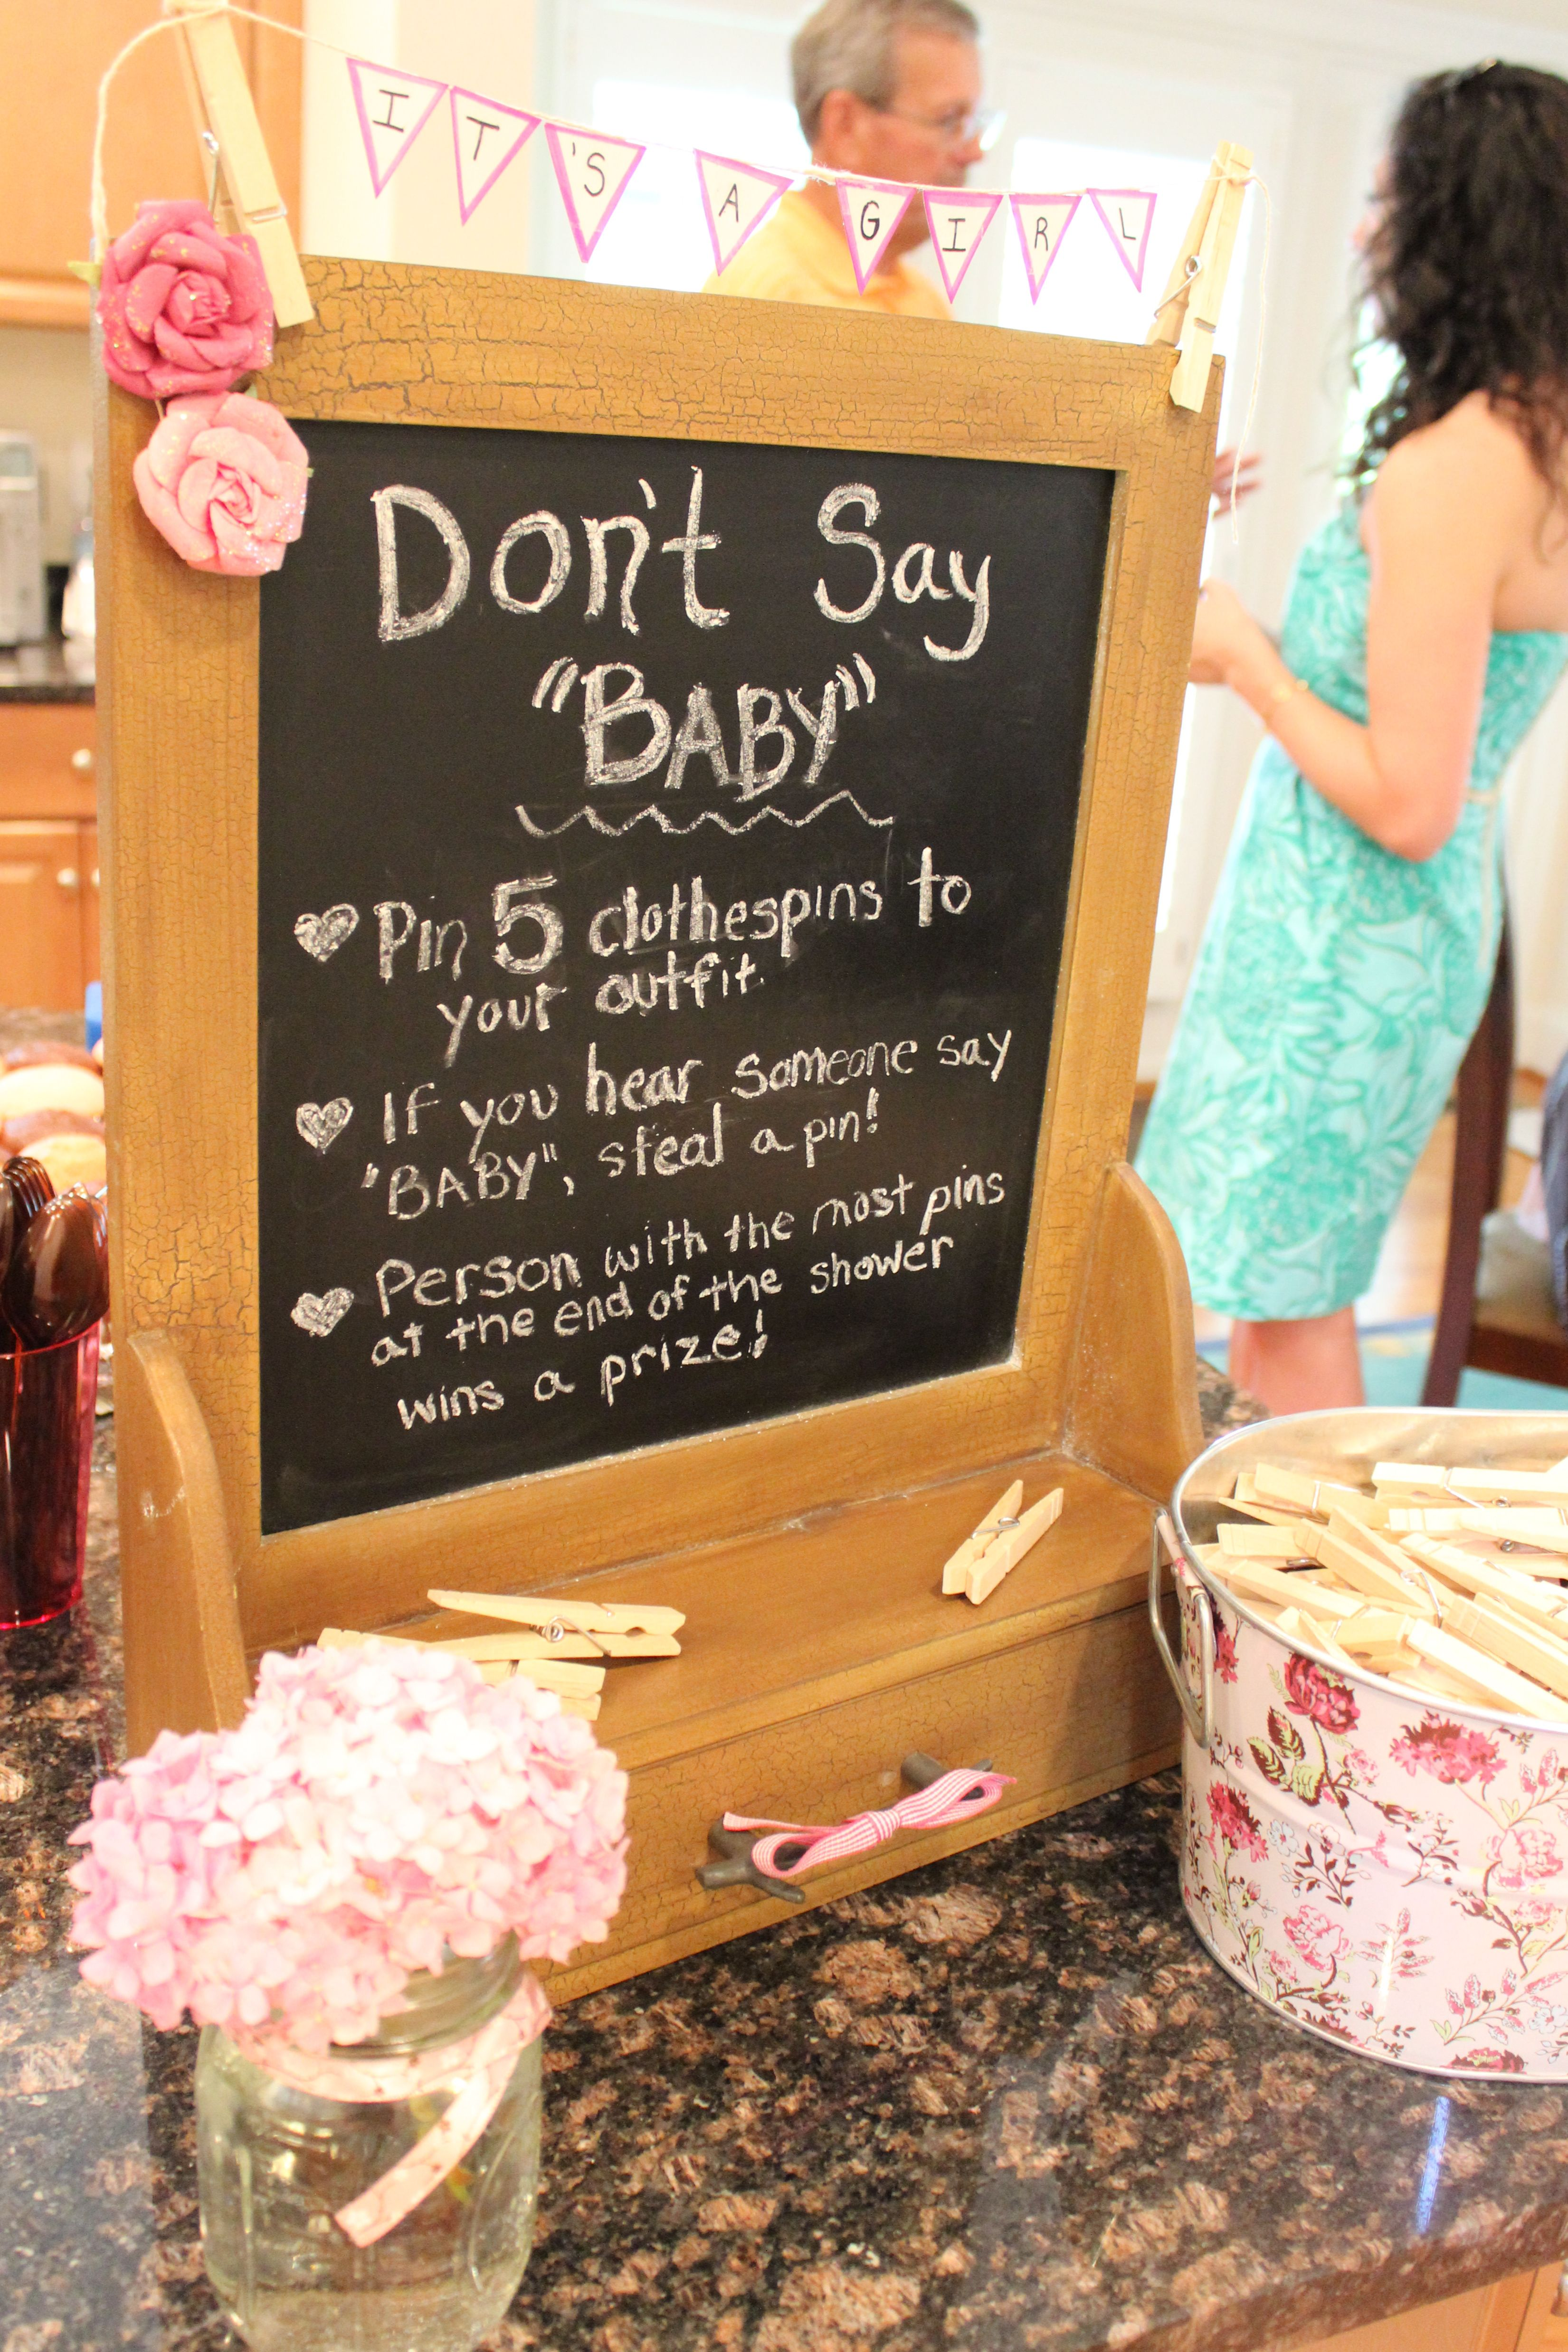 The Best Baby Shower Ideas Free Baby Shower Games Baby